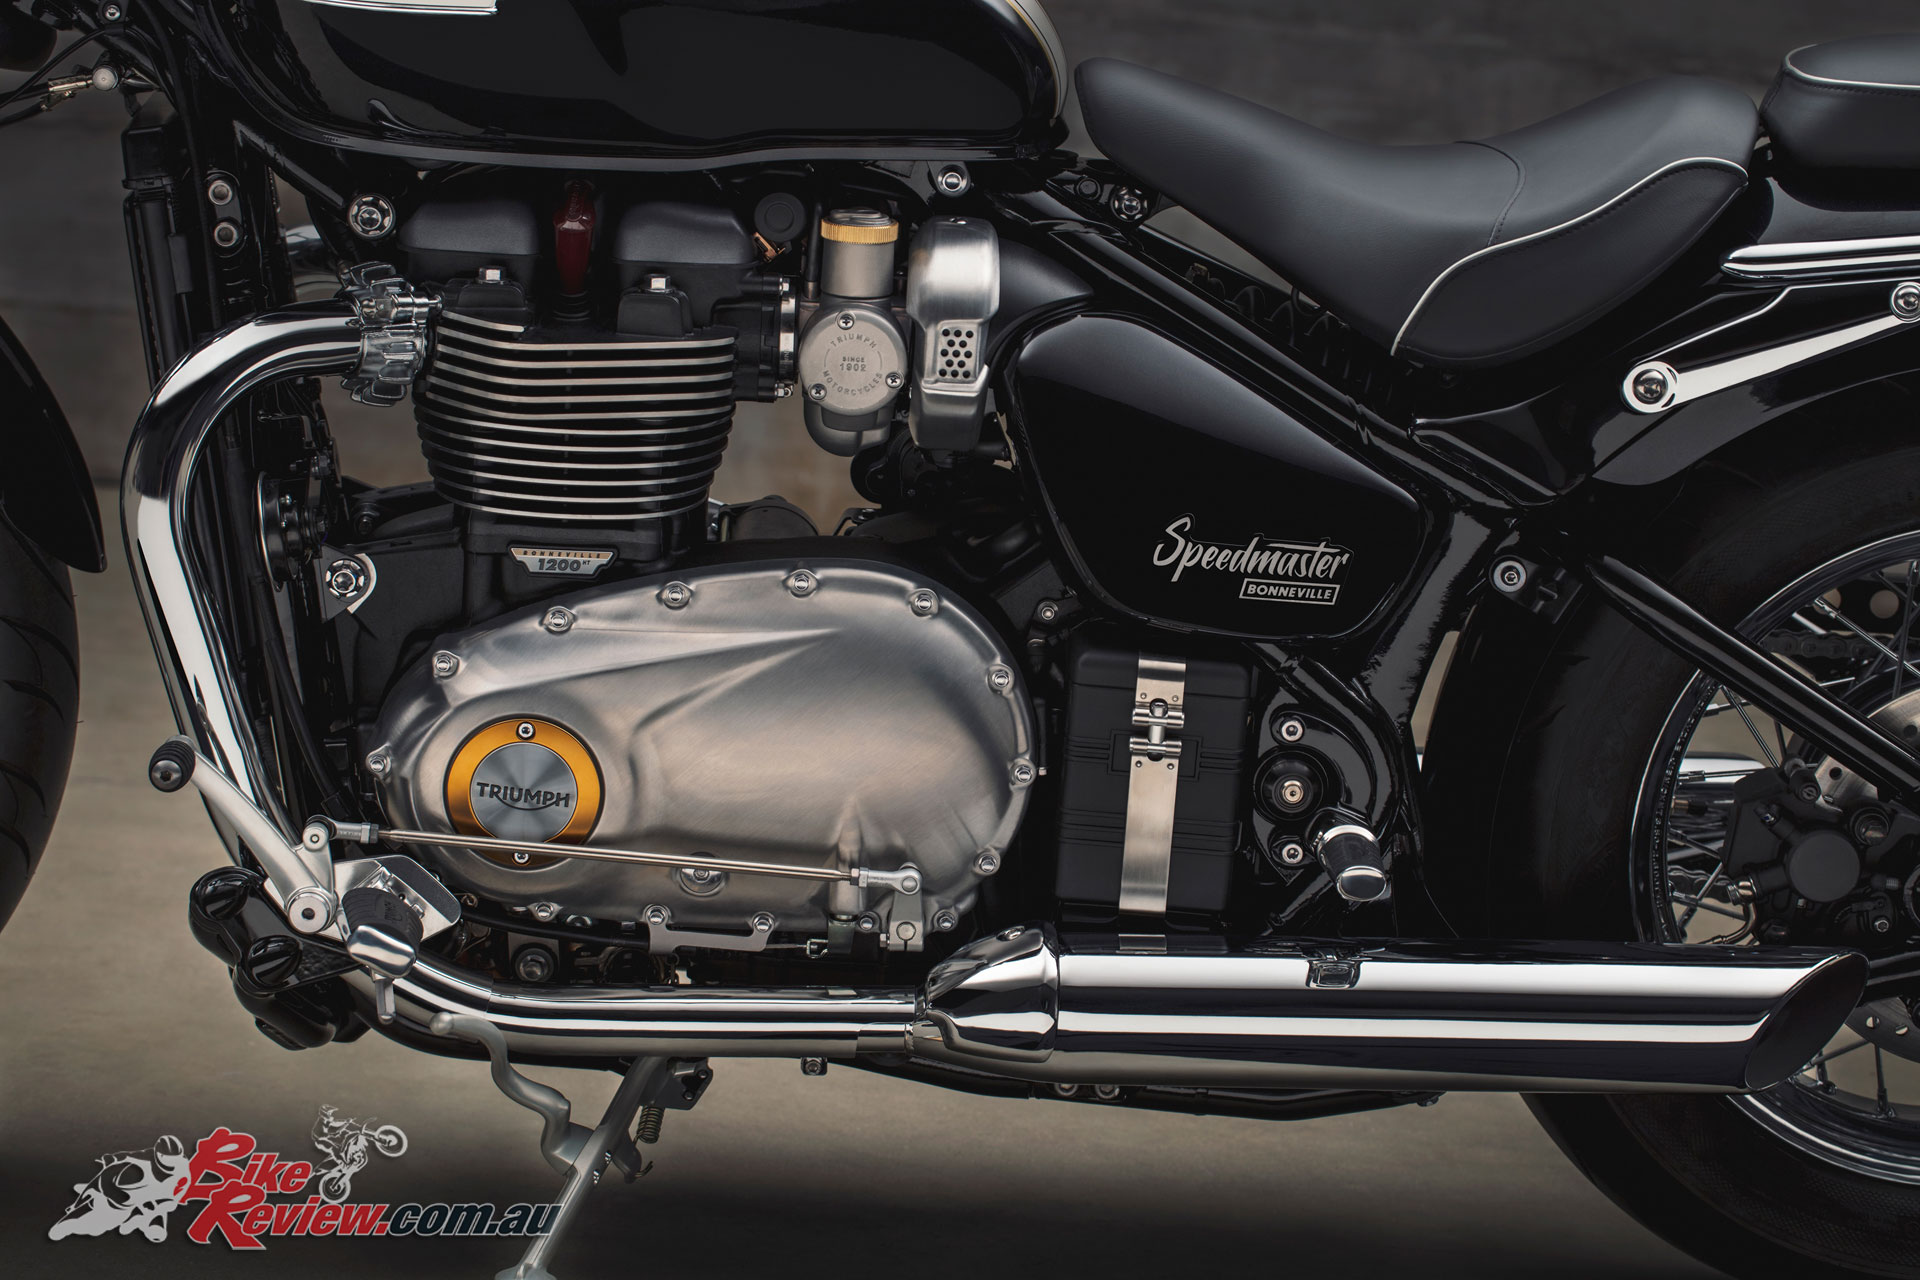 Massive performance gains over the 2015 Speedmaster model in both torque and horsepower